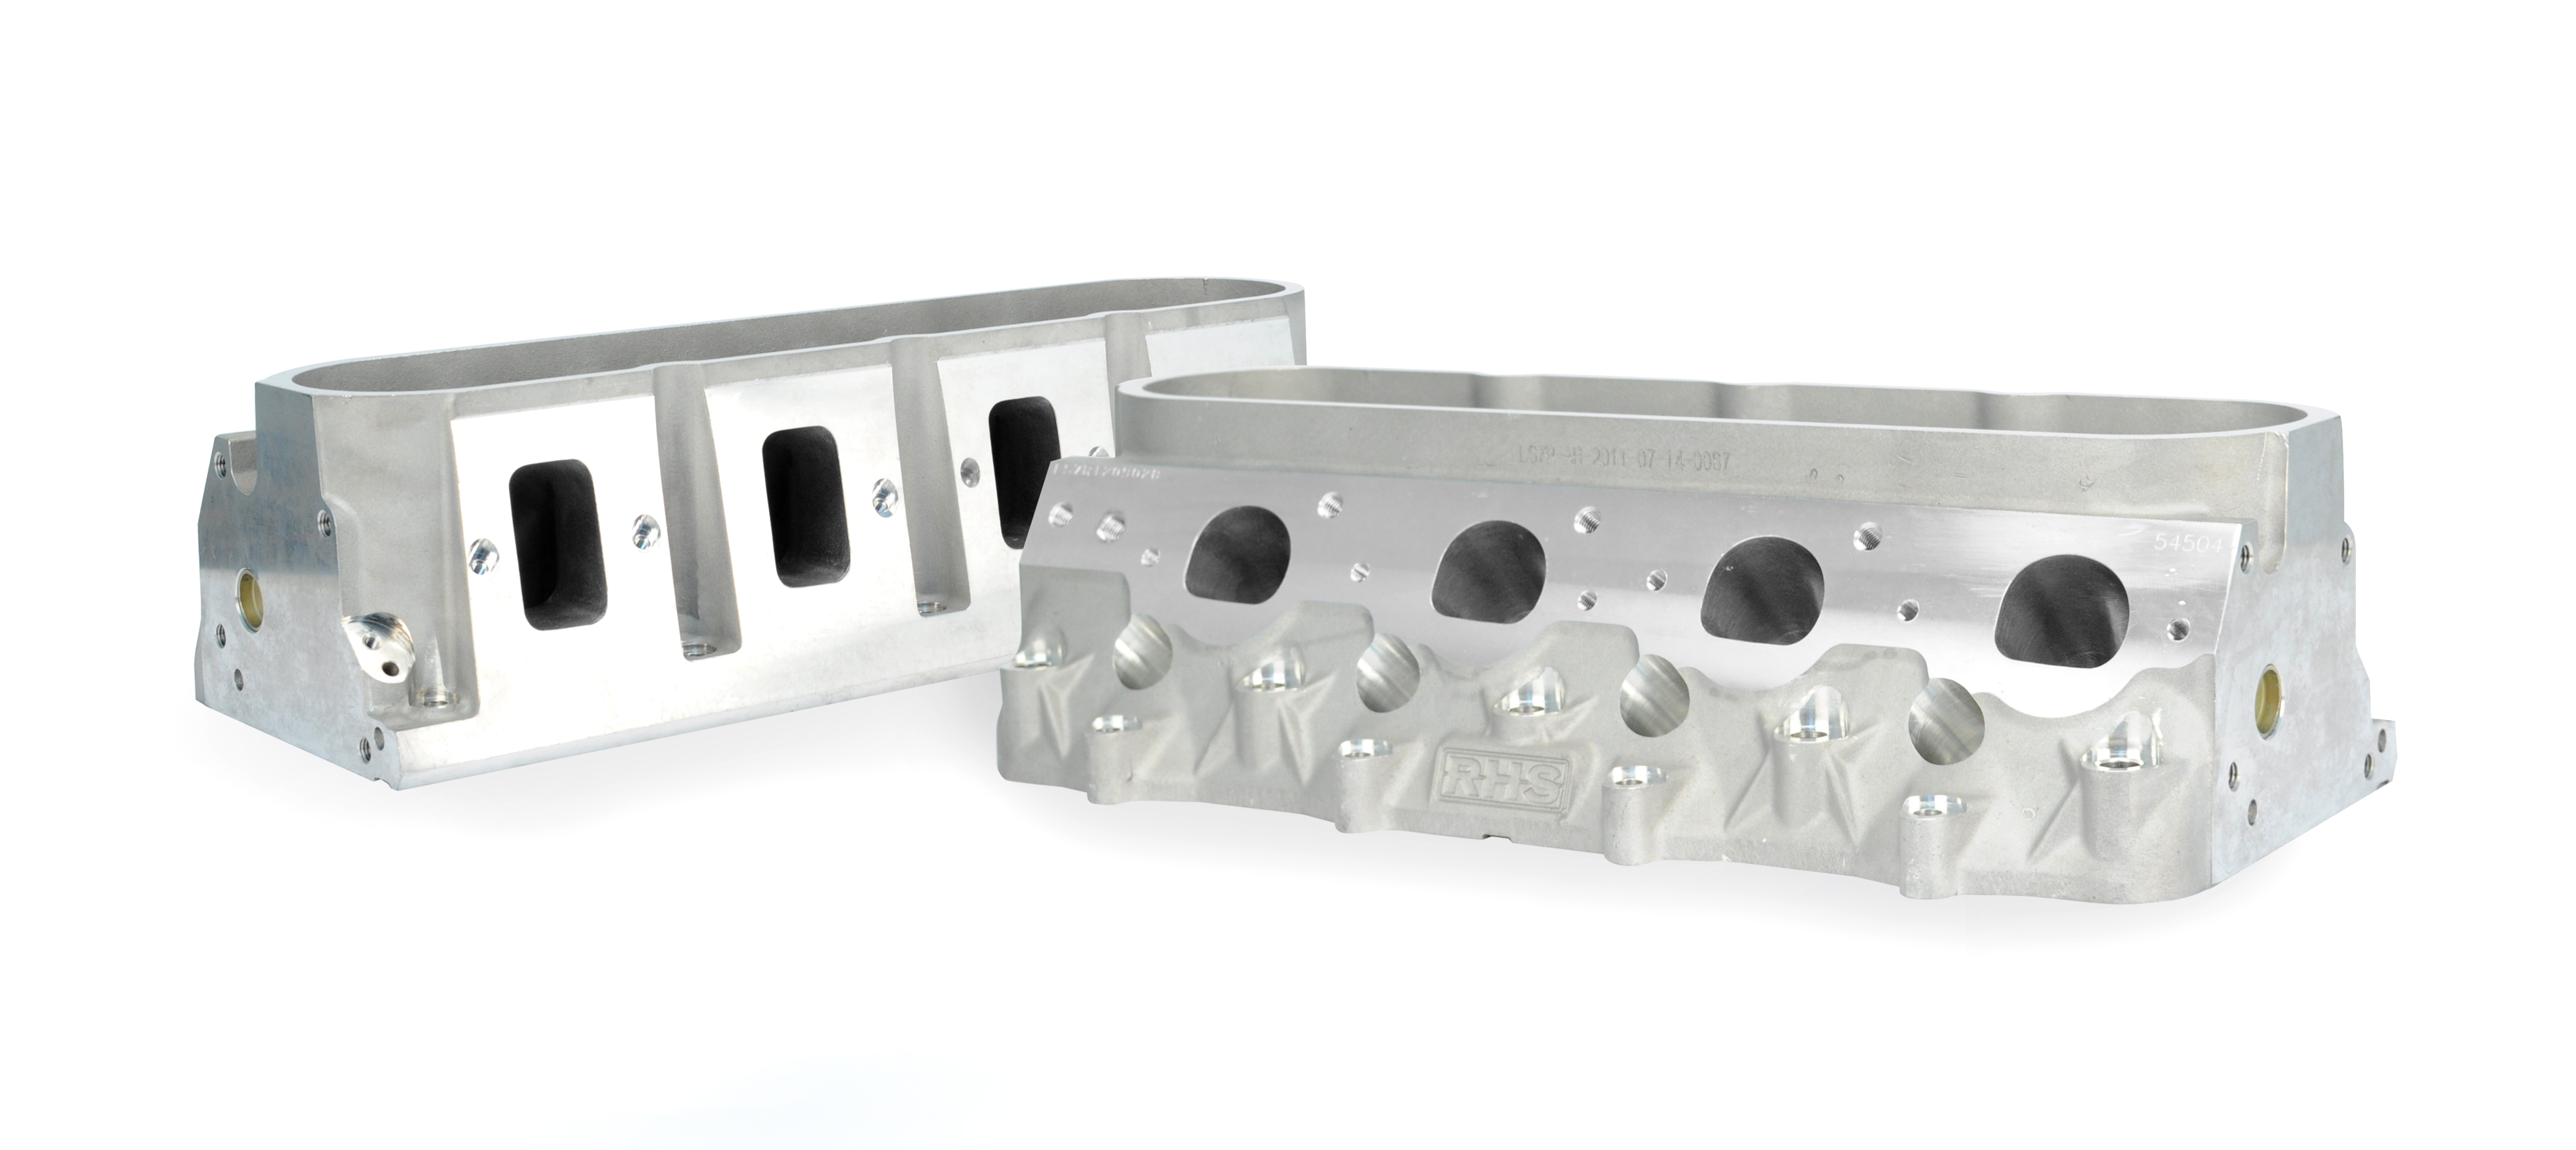 A Look into LS Cylinder Heads - thelsxdr com